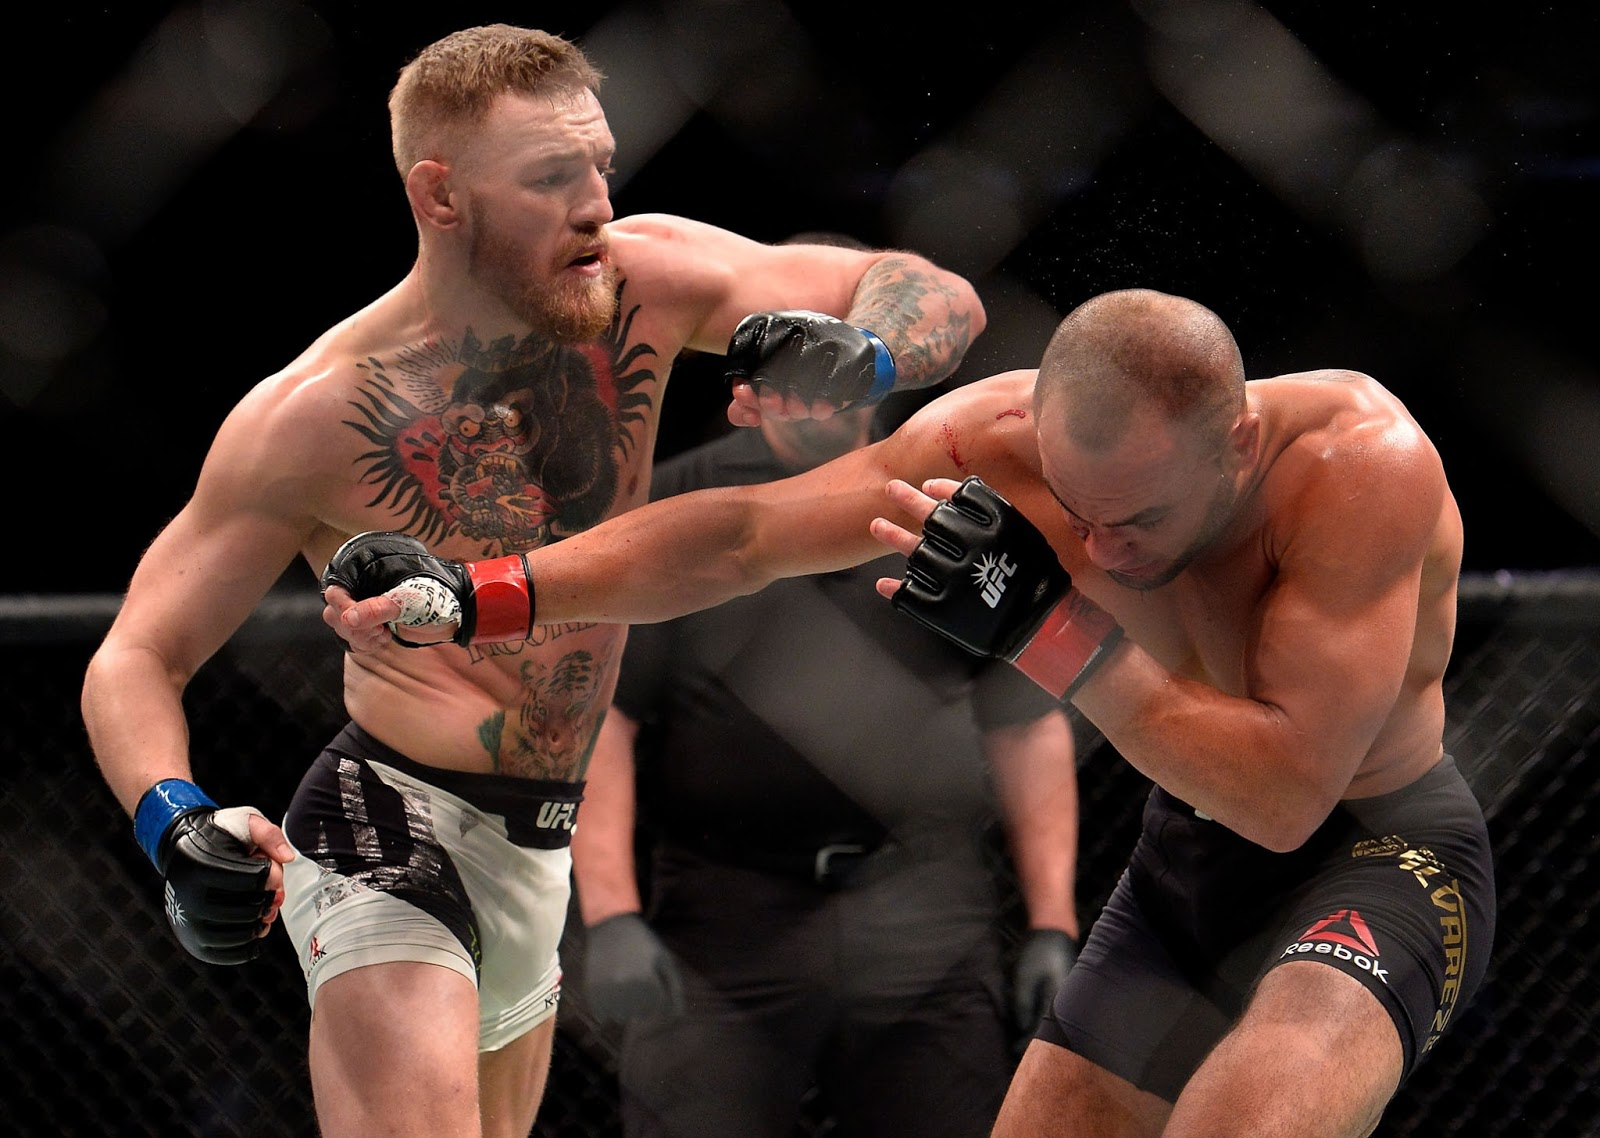 Monster Energy's Conor McGregor Makes History By Knocking Out Eddie Alvarez to Claim His Second ...